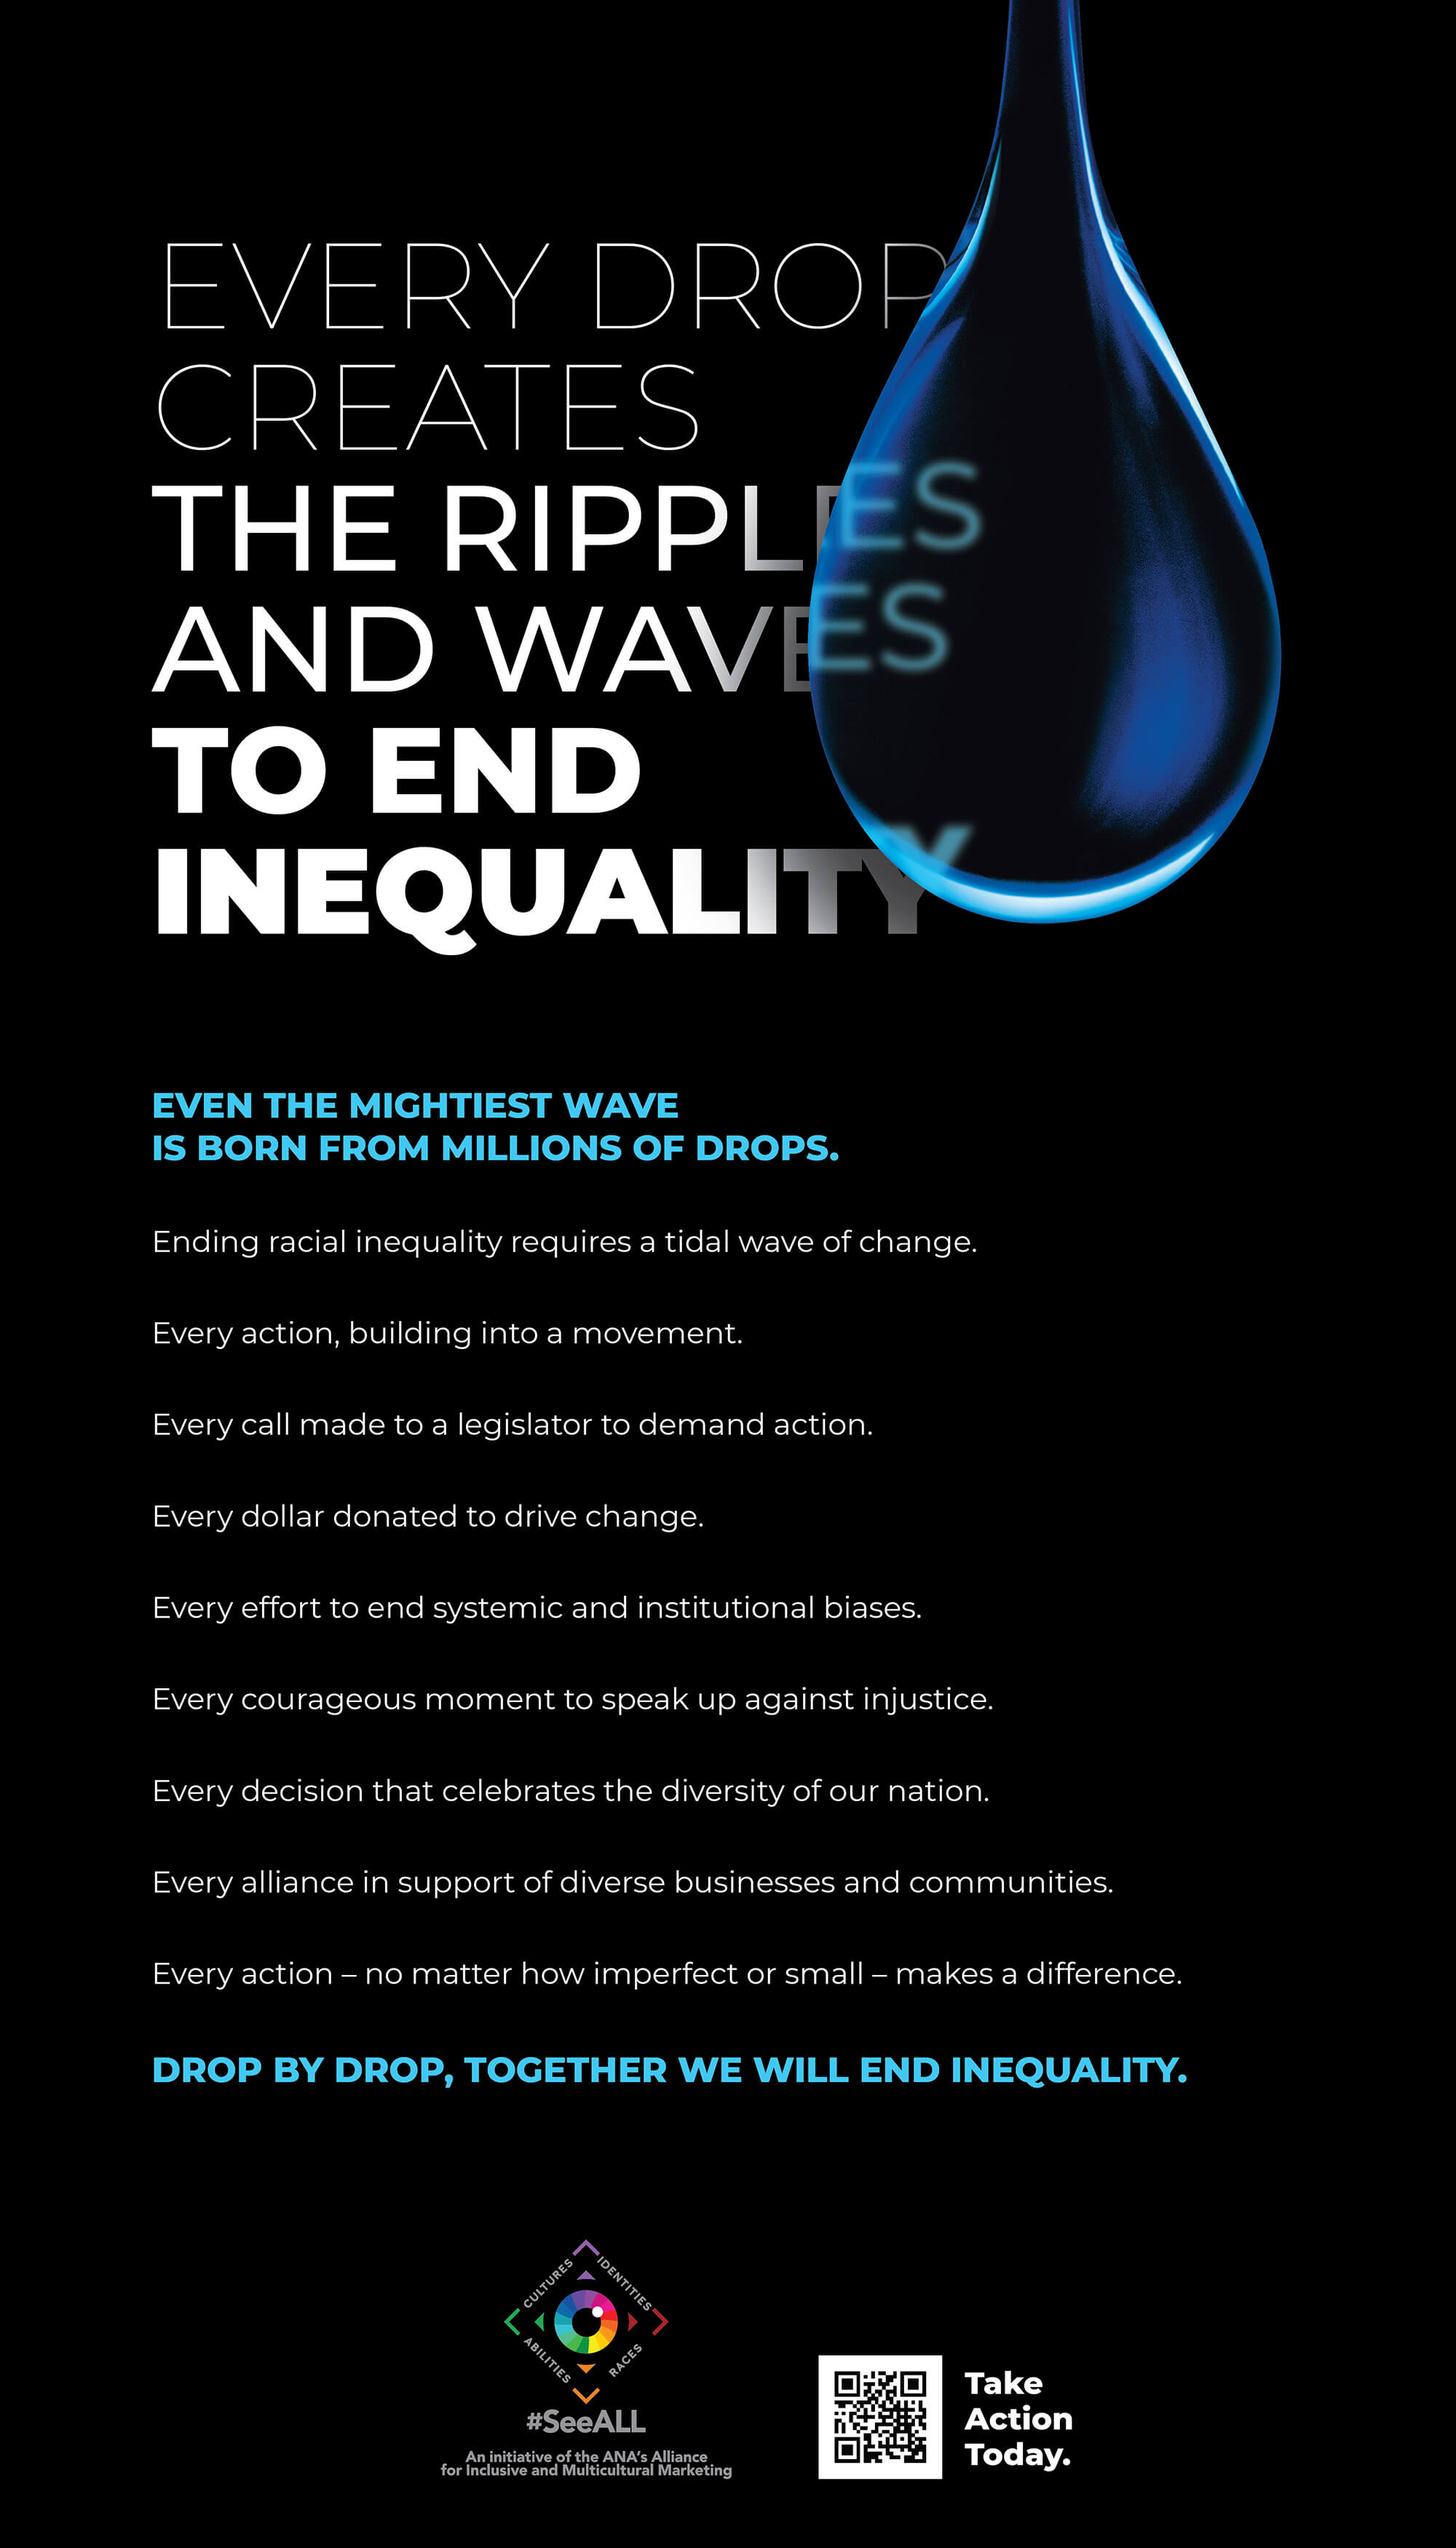 Every Drop Creates Ripples and Waves to End Inequality